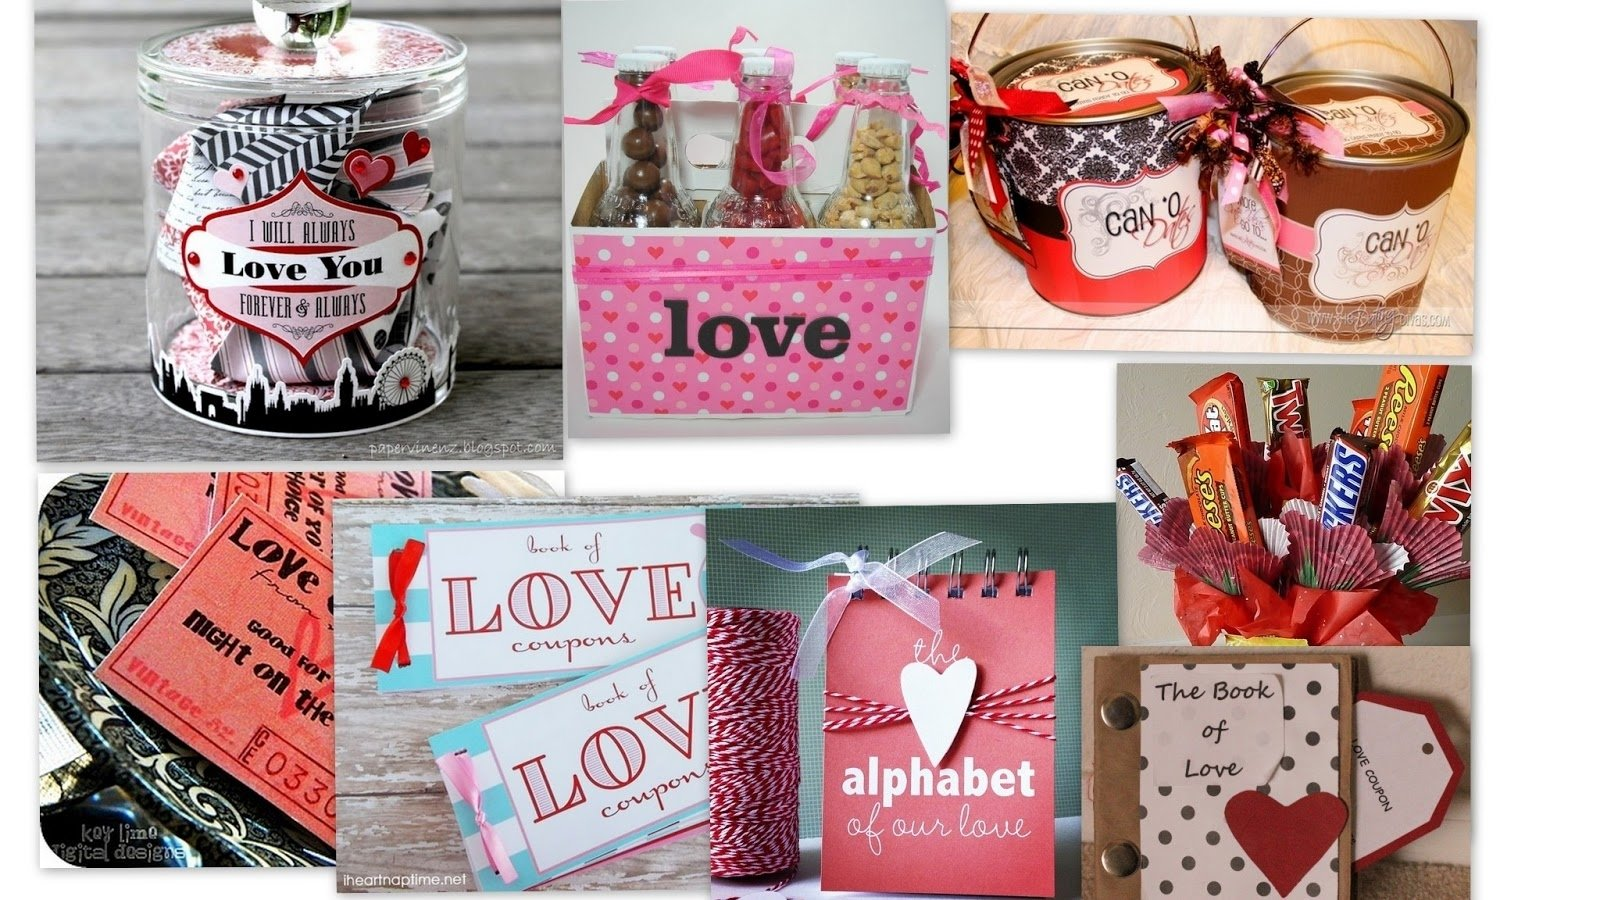 10 Cute Last Minute Homemade Christmas Gift Ideas easy last minute diy valentines gifts i dig pinterest 1 2020